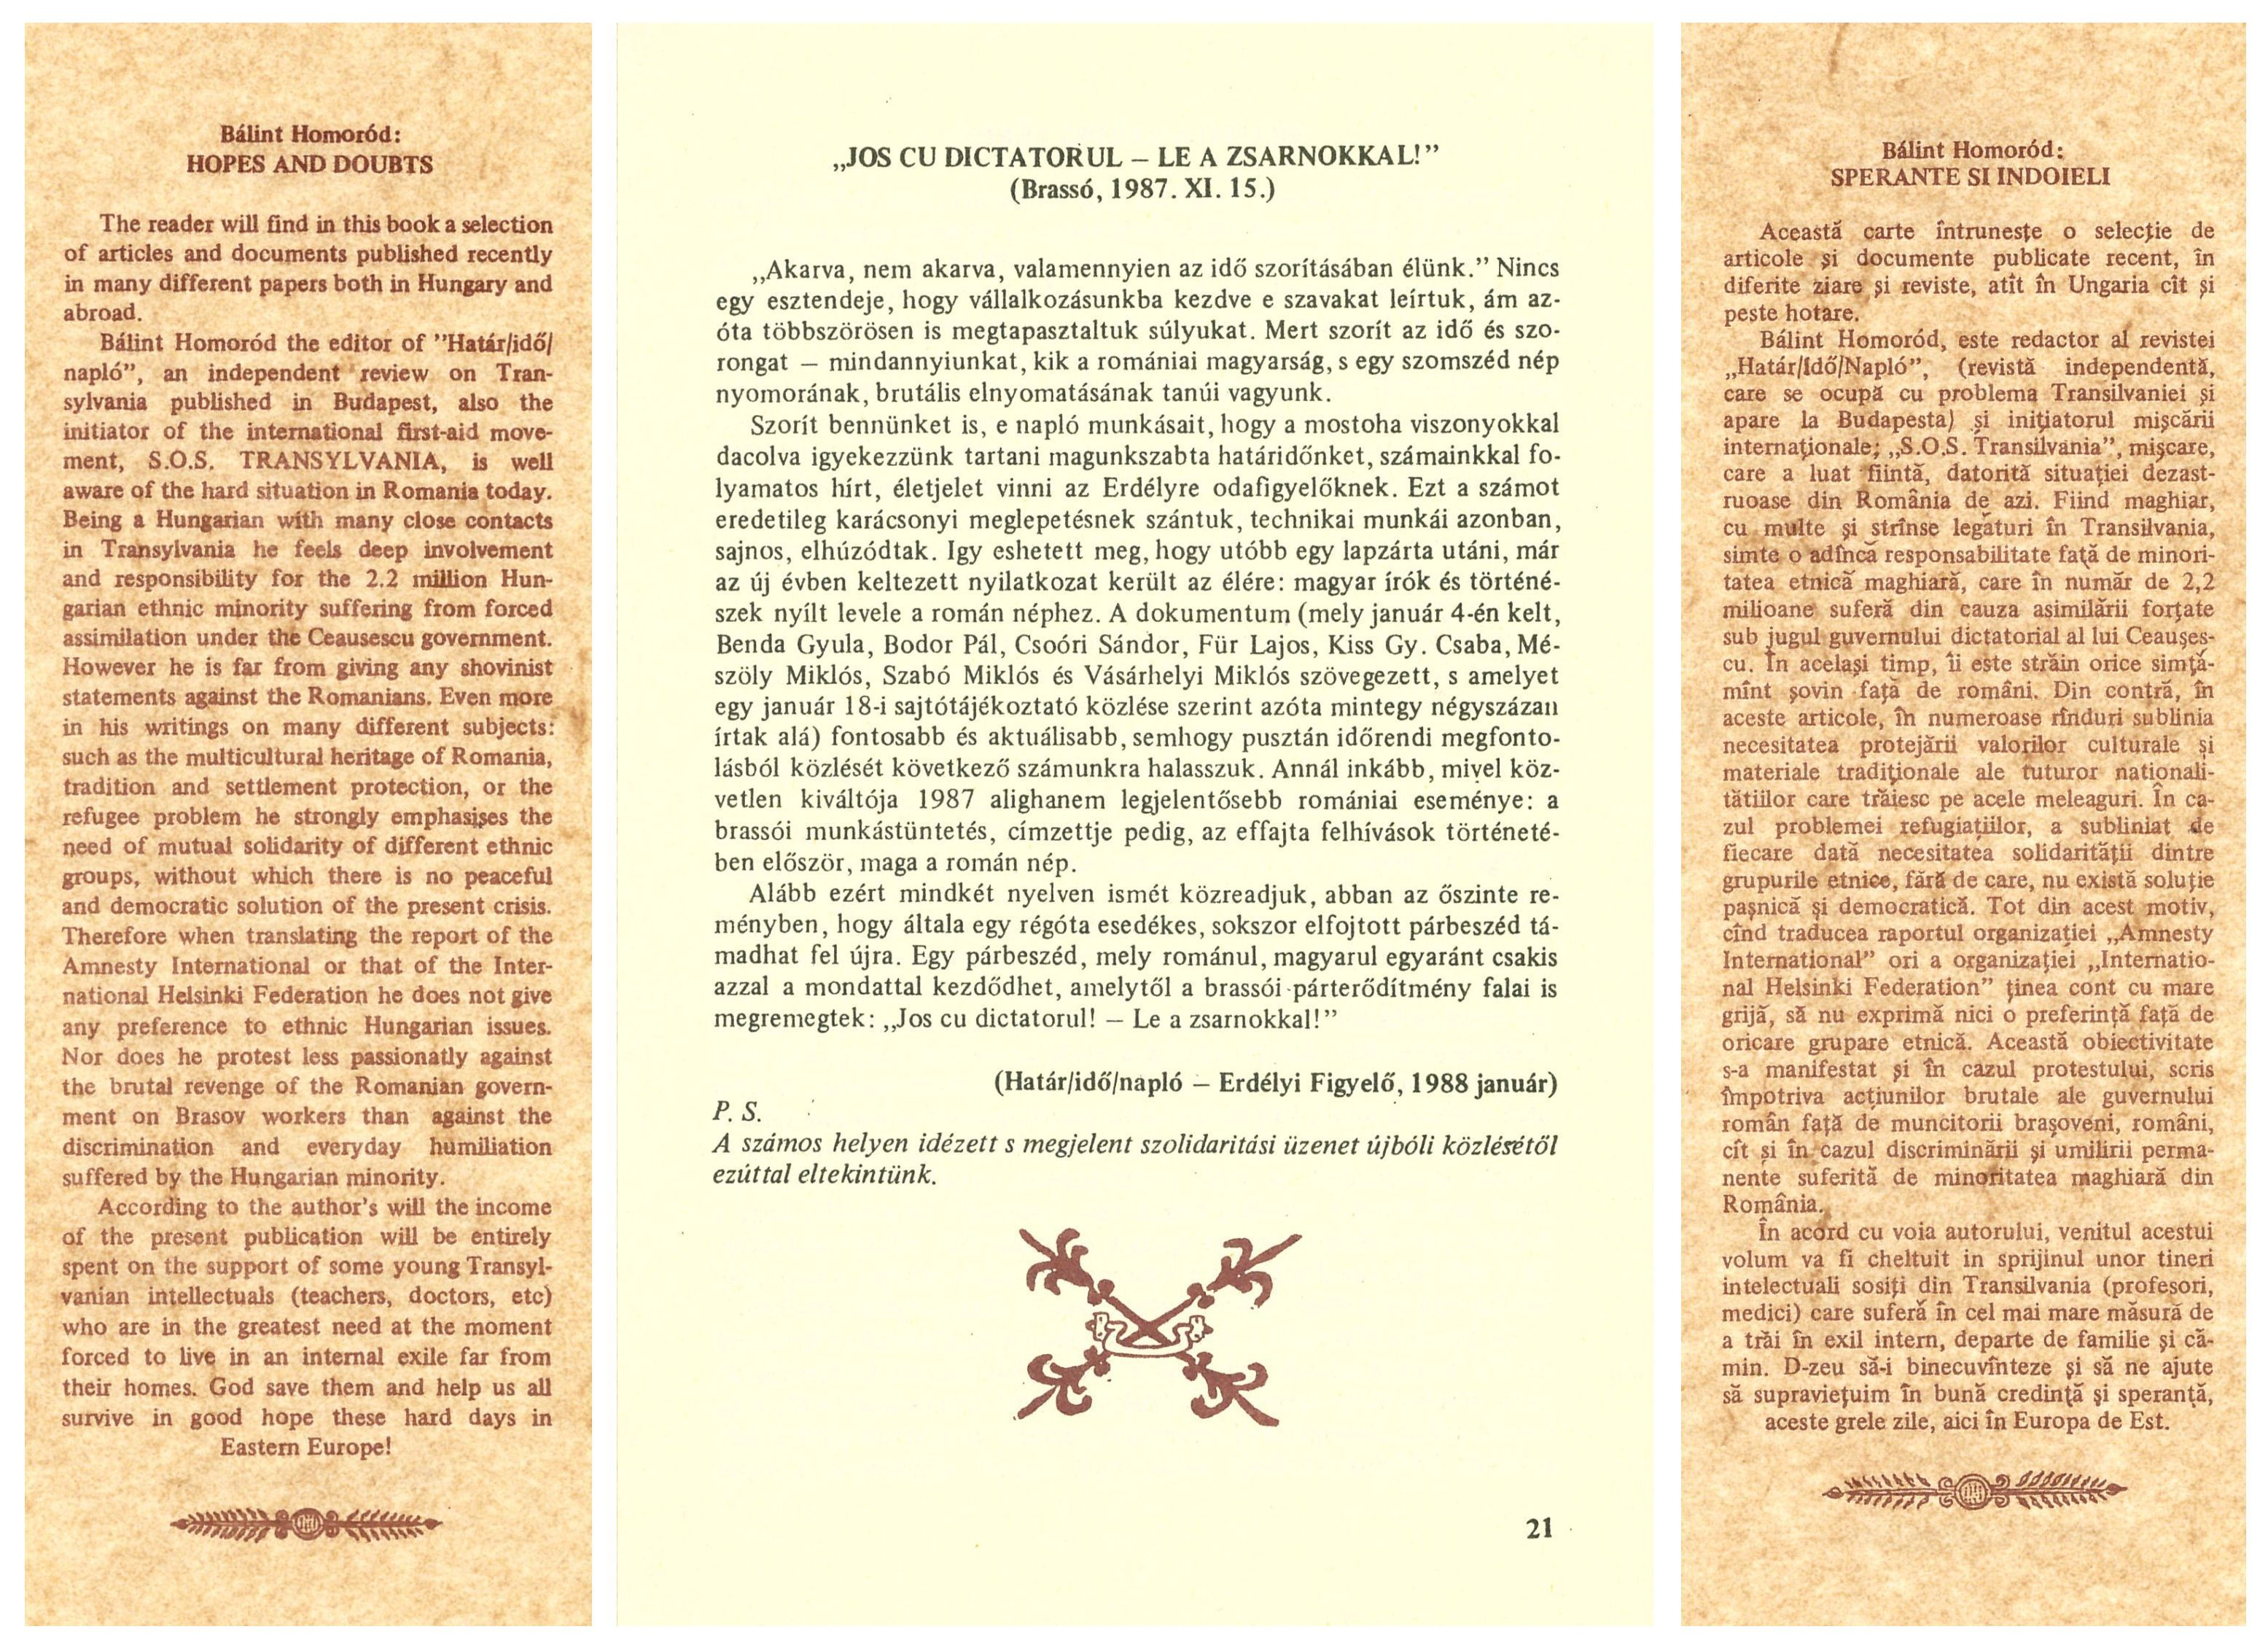 One page of the book Hopes and Doubts with a call for solidarity with the Brassov workers revolted against Ceausescu's regime in mid-November 1987 together with the English (left side) and the Romanian (right side) summaries of the samizdat book.